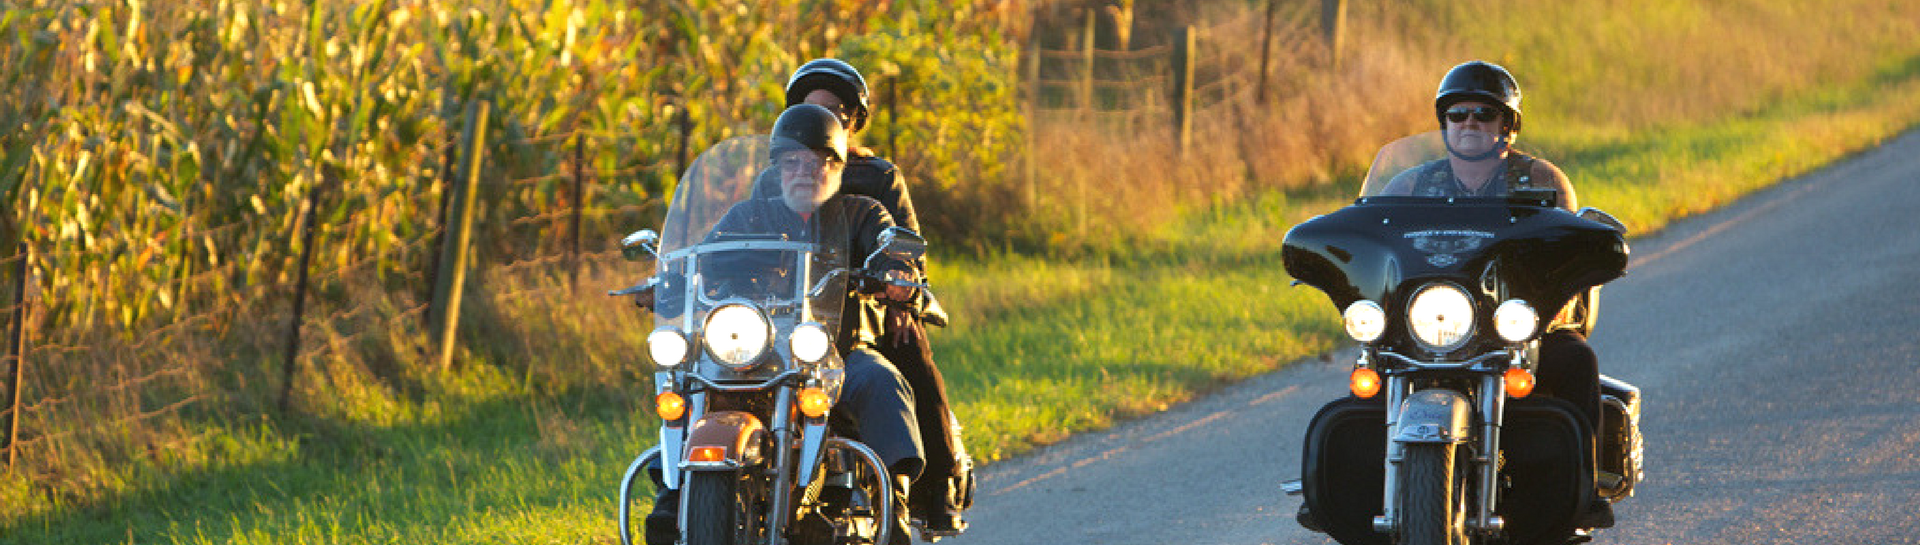 Two motorcycles driving along vineyard